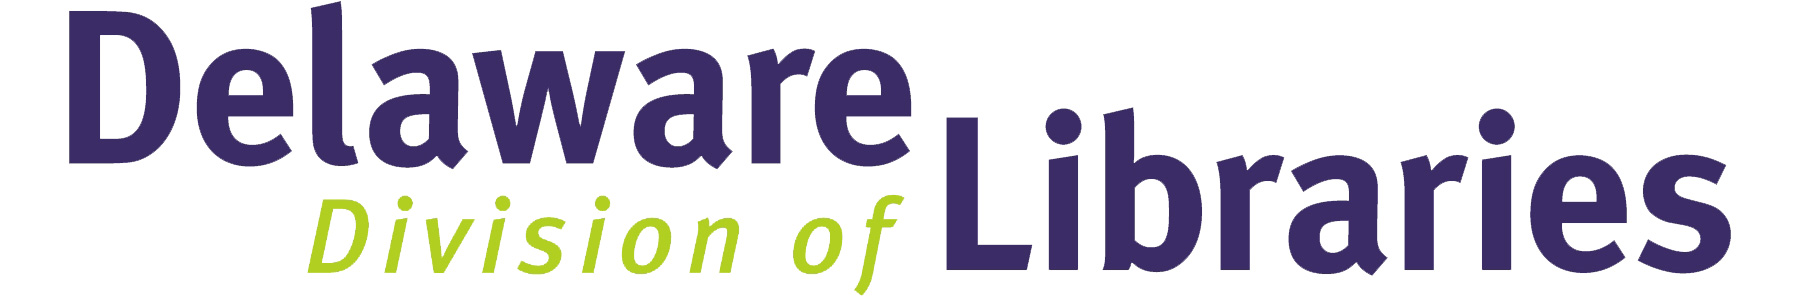 Image of the Delaware Division of Libraries logo